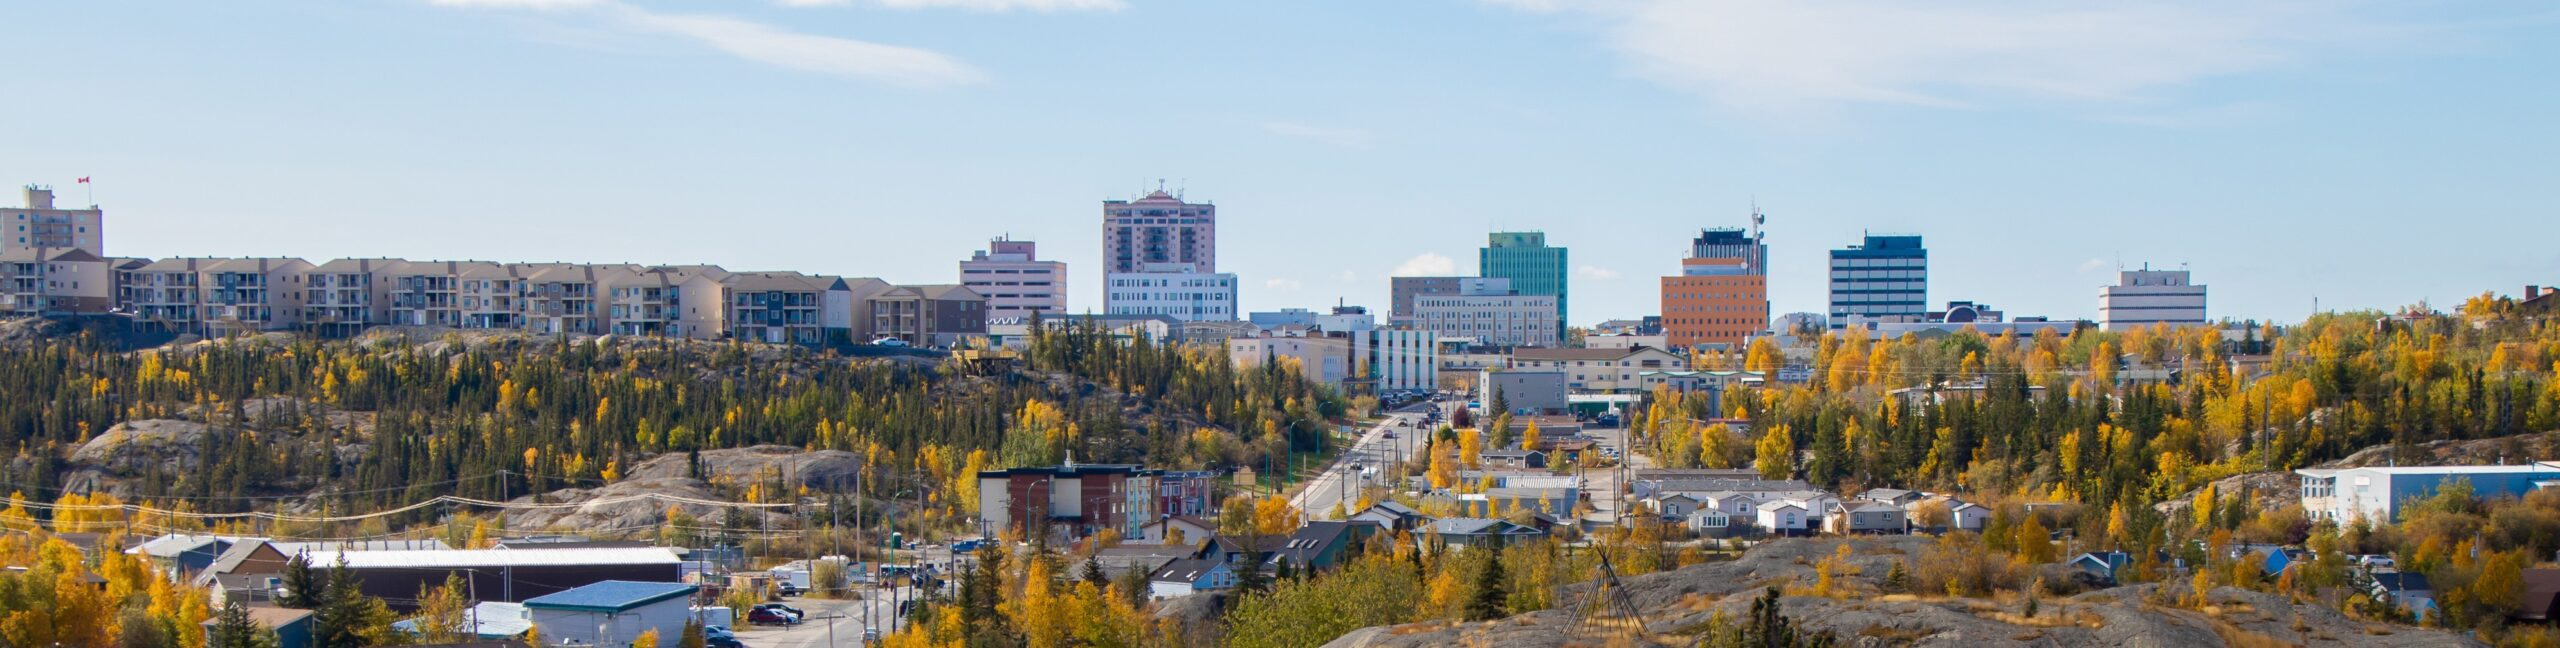 Yellowknife, Territoires du Nord-Ouest